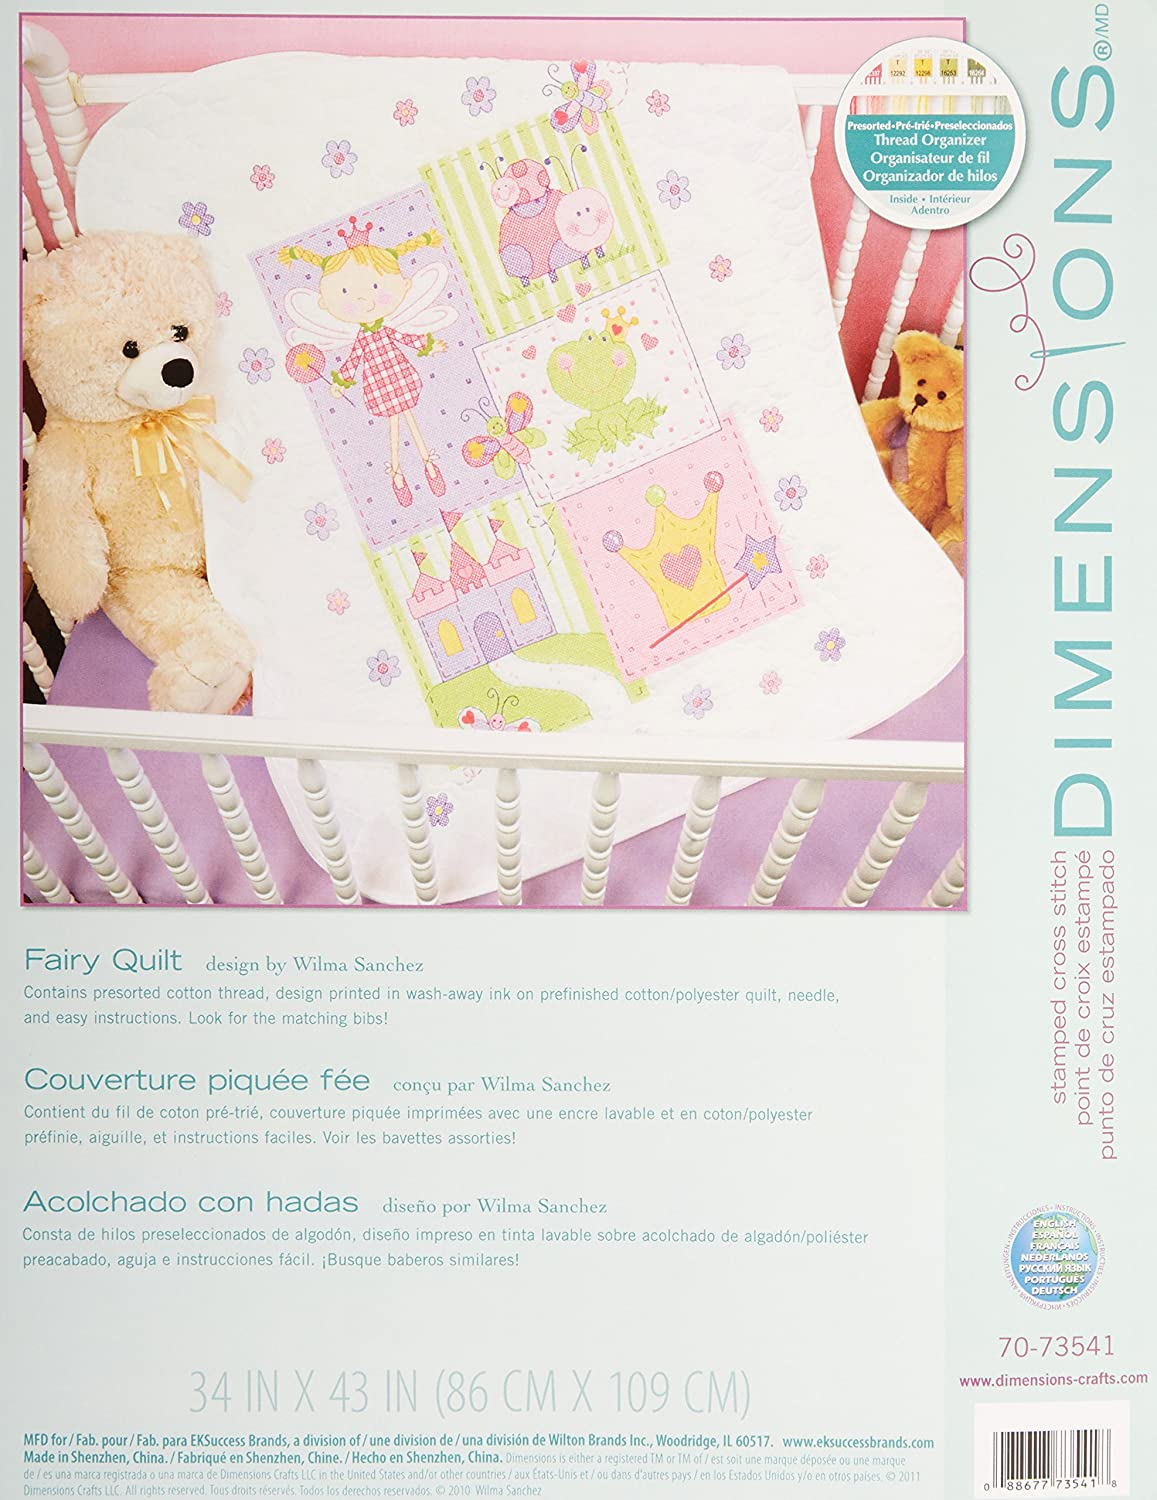 Baby Hugs Fairy Quilt Stamped Cross Stitch Kit-34